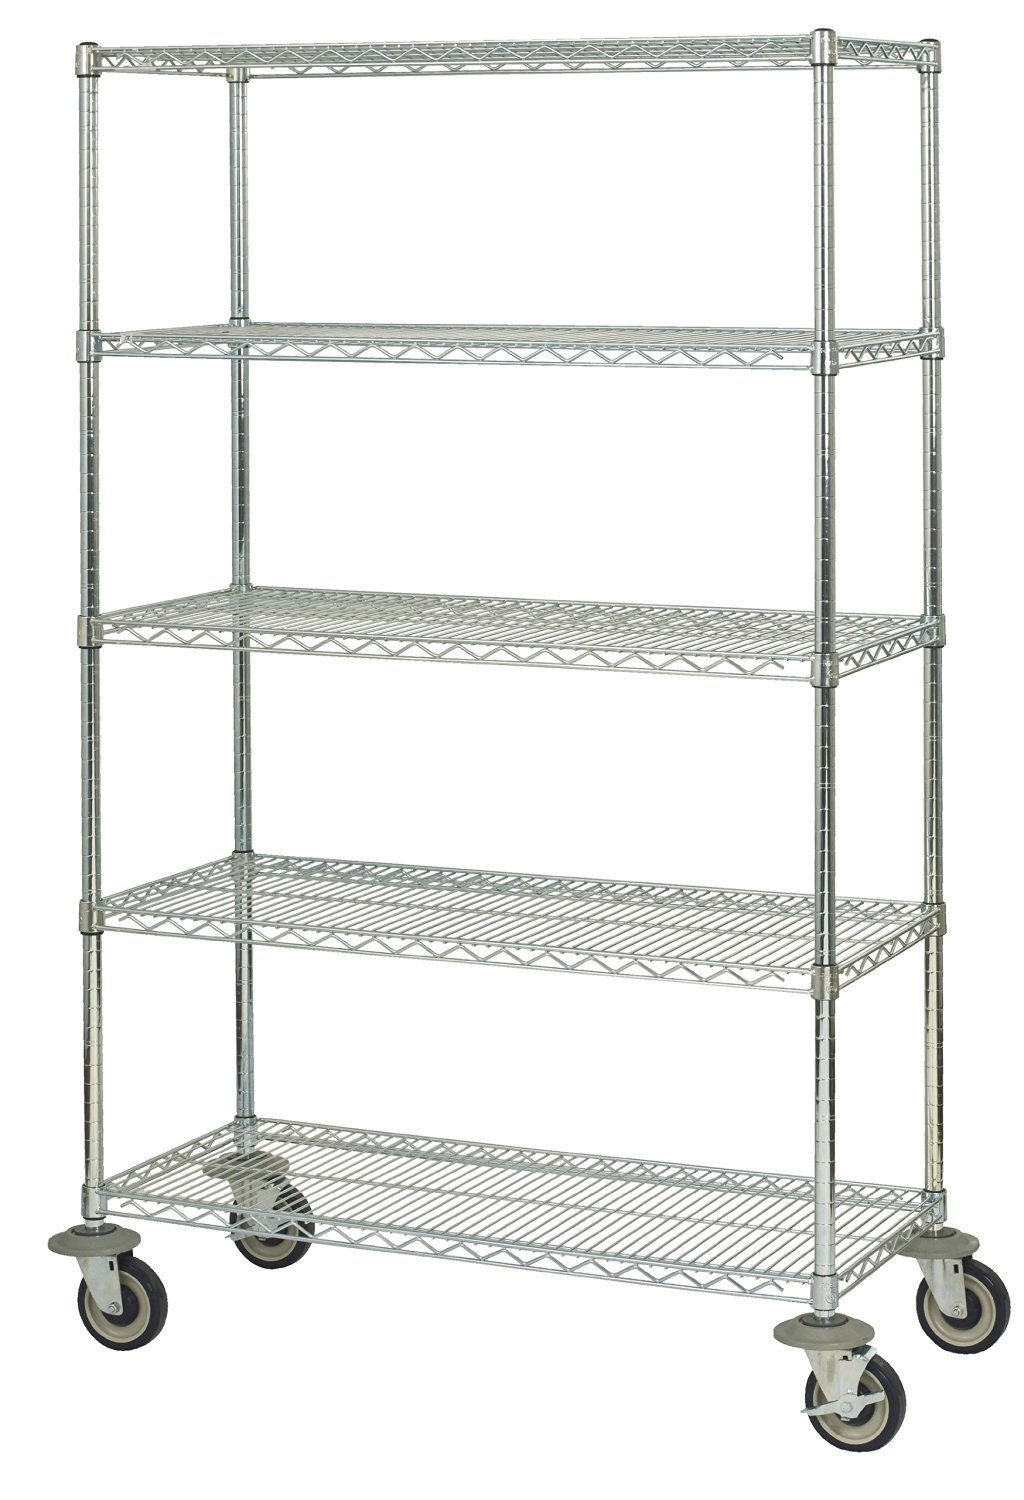 """Omega Precision - 18"""" Deep x 24"""" Wide x 60"""" High Chrome Wire 800lb Capacity 5 Shelf Truck<br> Qty(5) 18"""" Deep x 24"""" Wide Chrome Wire Shelves Qty(4) 54"""" High Posts Qty(4) 5"""" Rubber Casters (2 w/ brake)"""